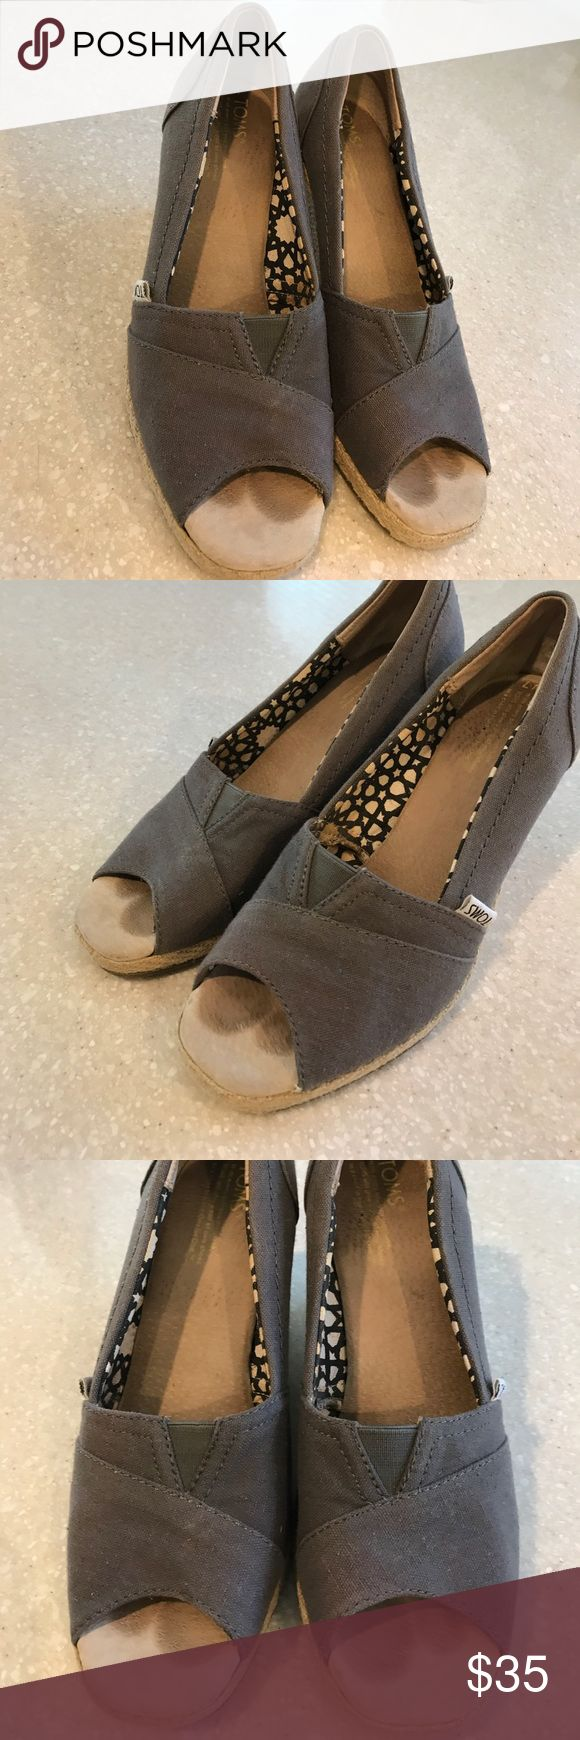 Tom's wedges size 7 Look excellent just has footprints only in the footbed noticed. TOMS Shoes Wedges